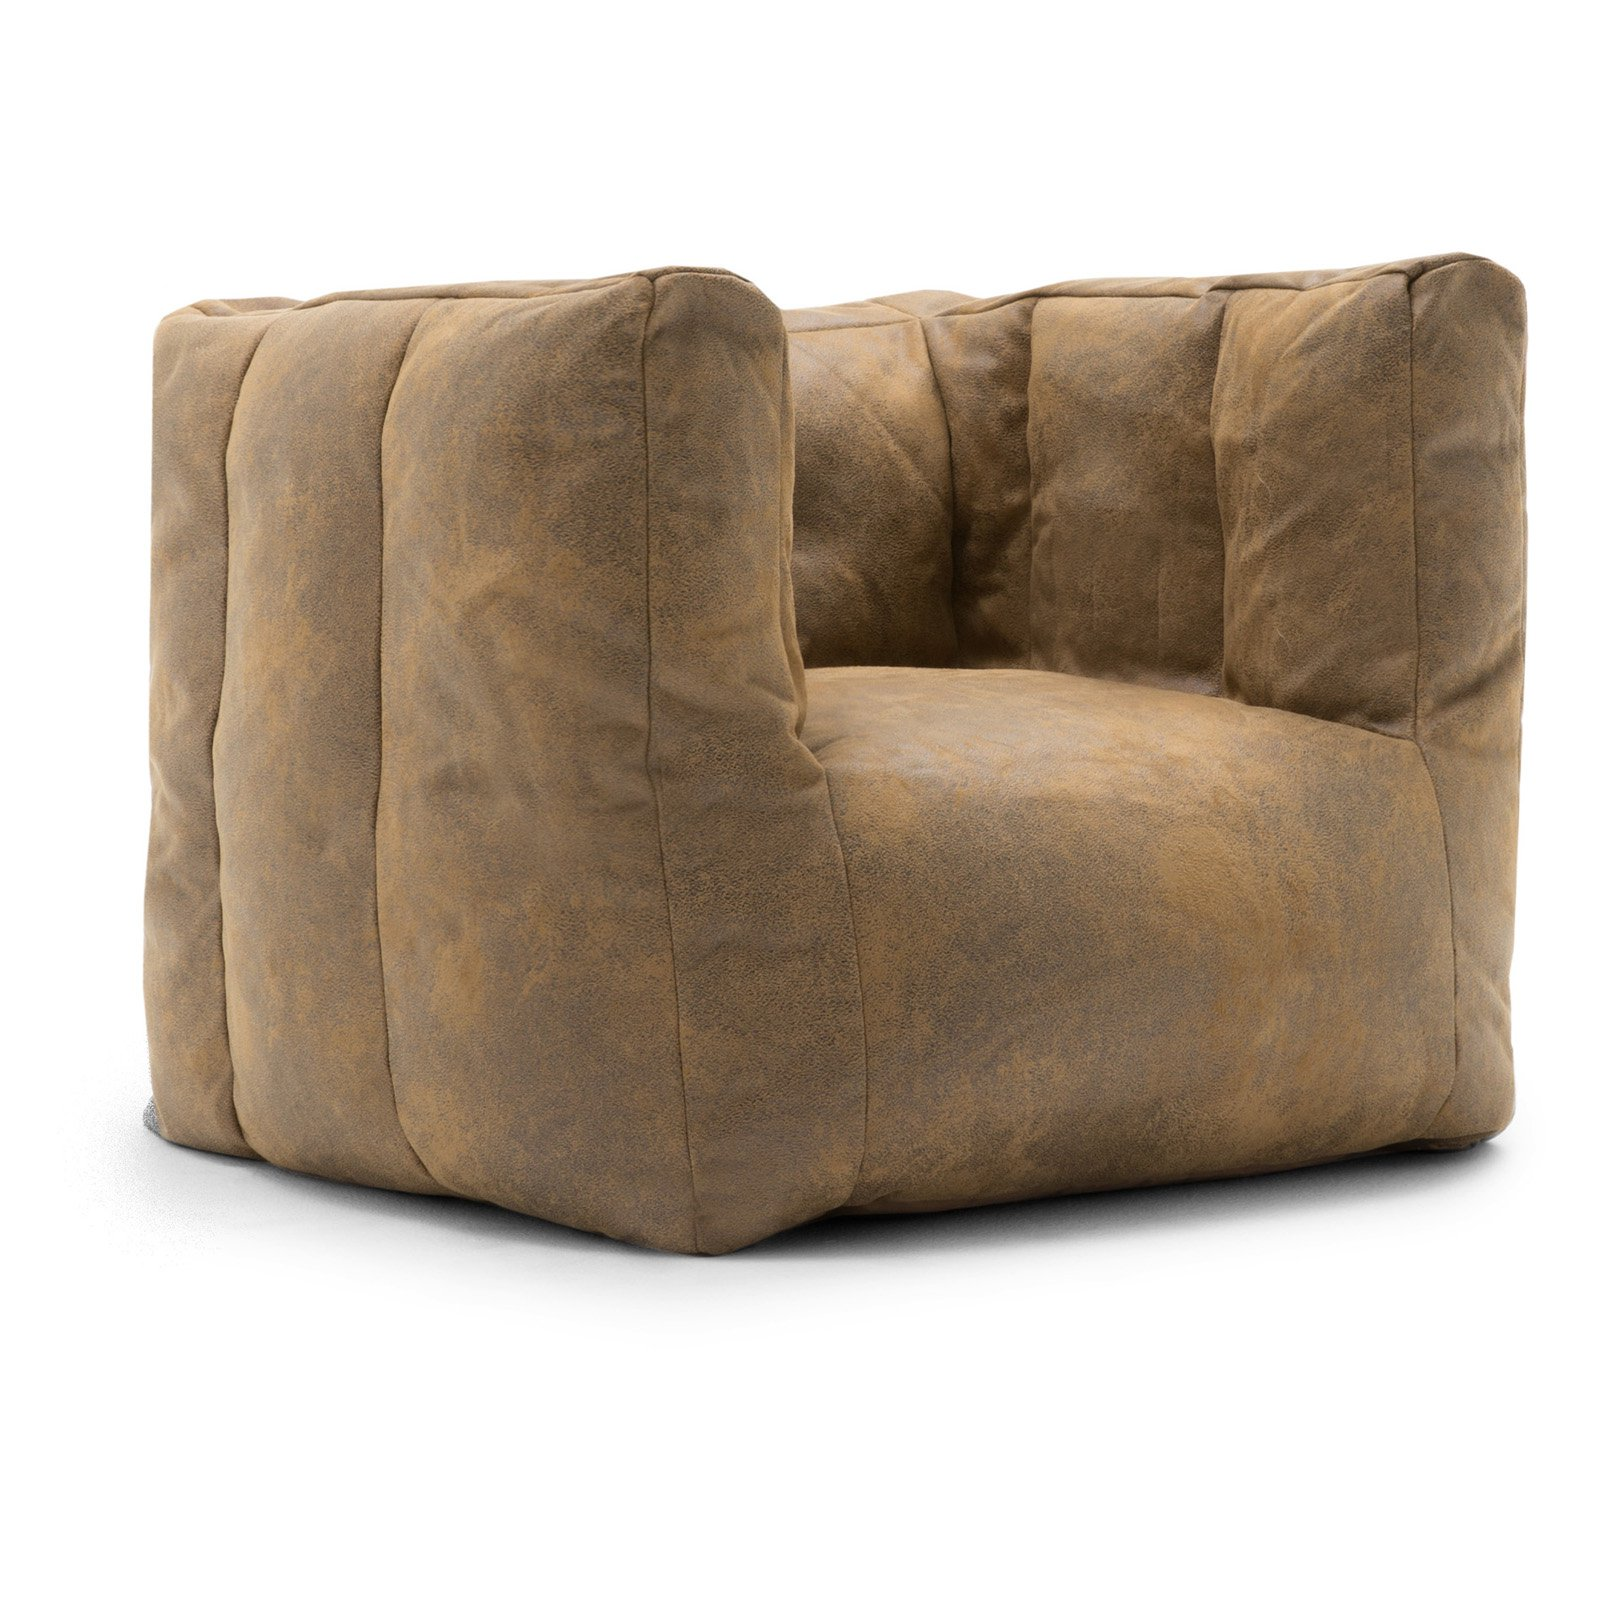 Lux by Big Joe Cube Blazer Leather Bean Bag